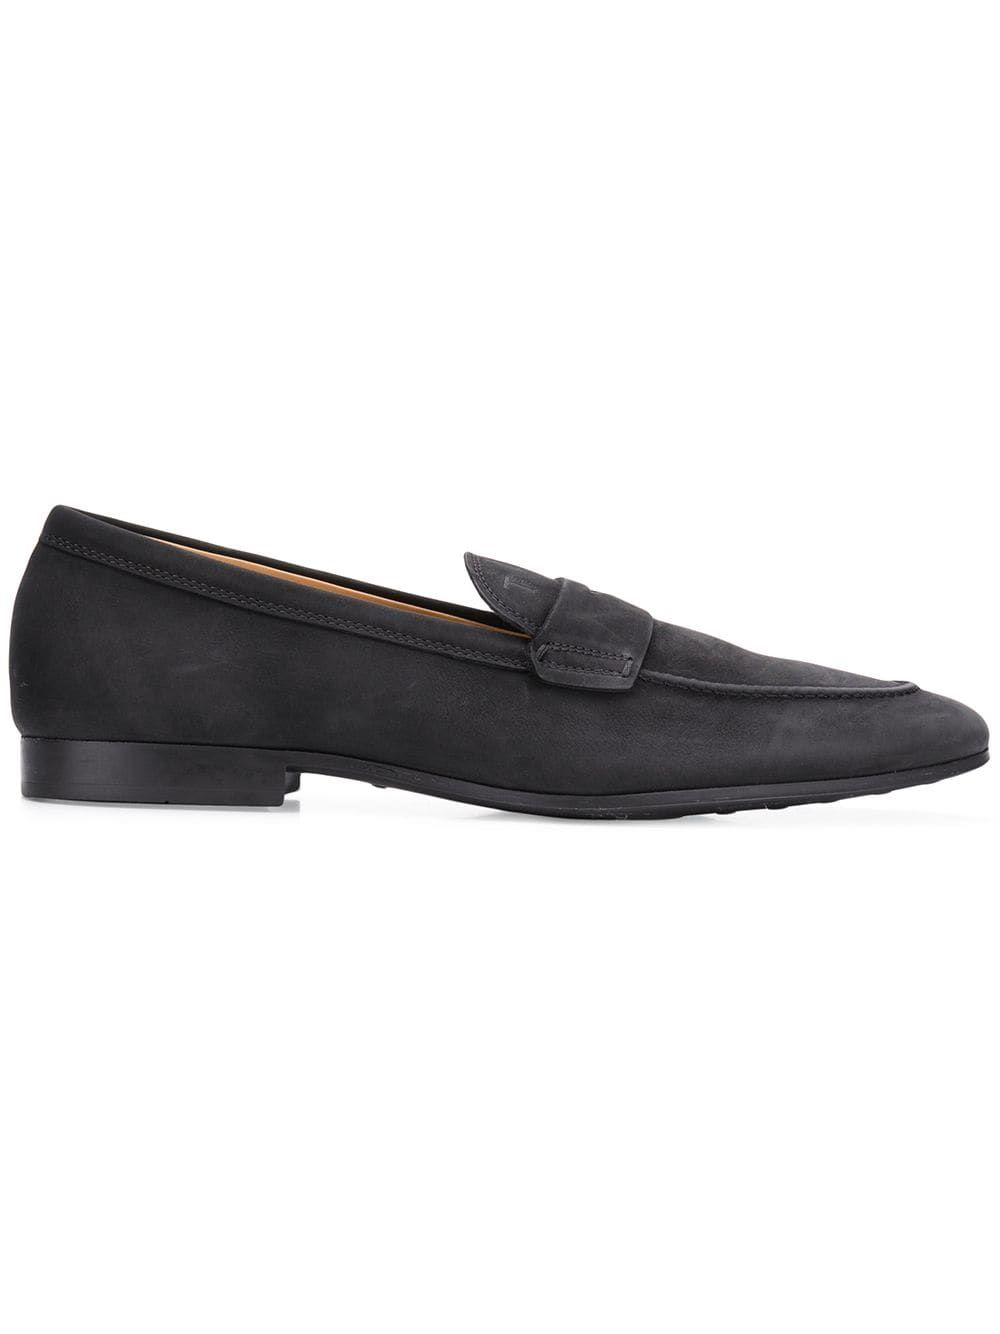 ab2d8b4f0fd TOD S TOD S GOMMINO DRIVING LOAFERS - BLACK.  tods  shoes